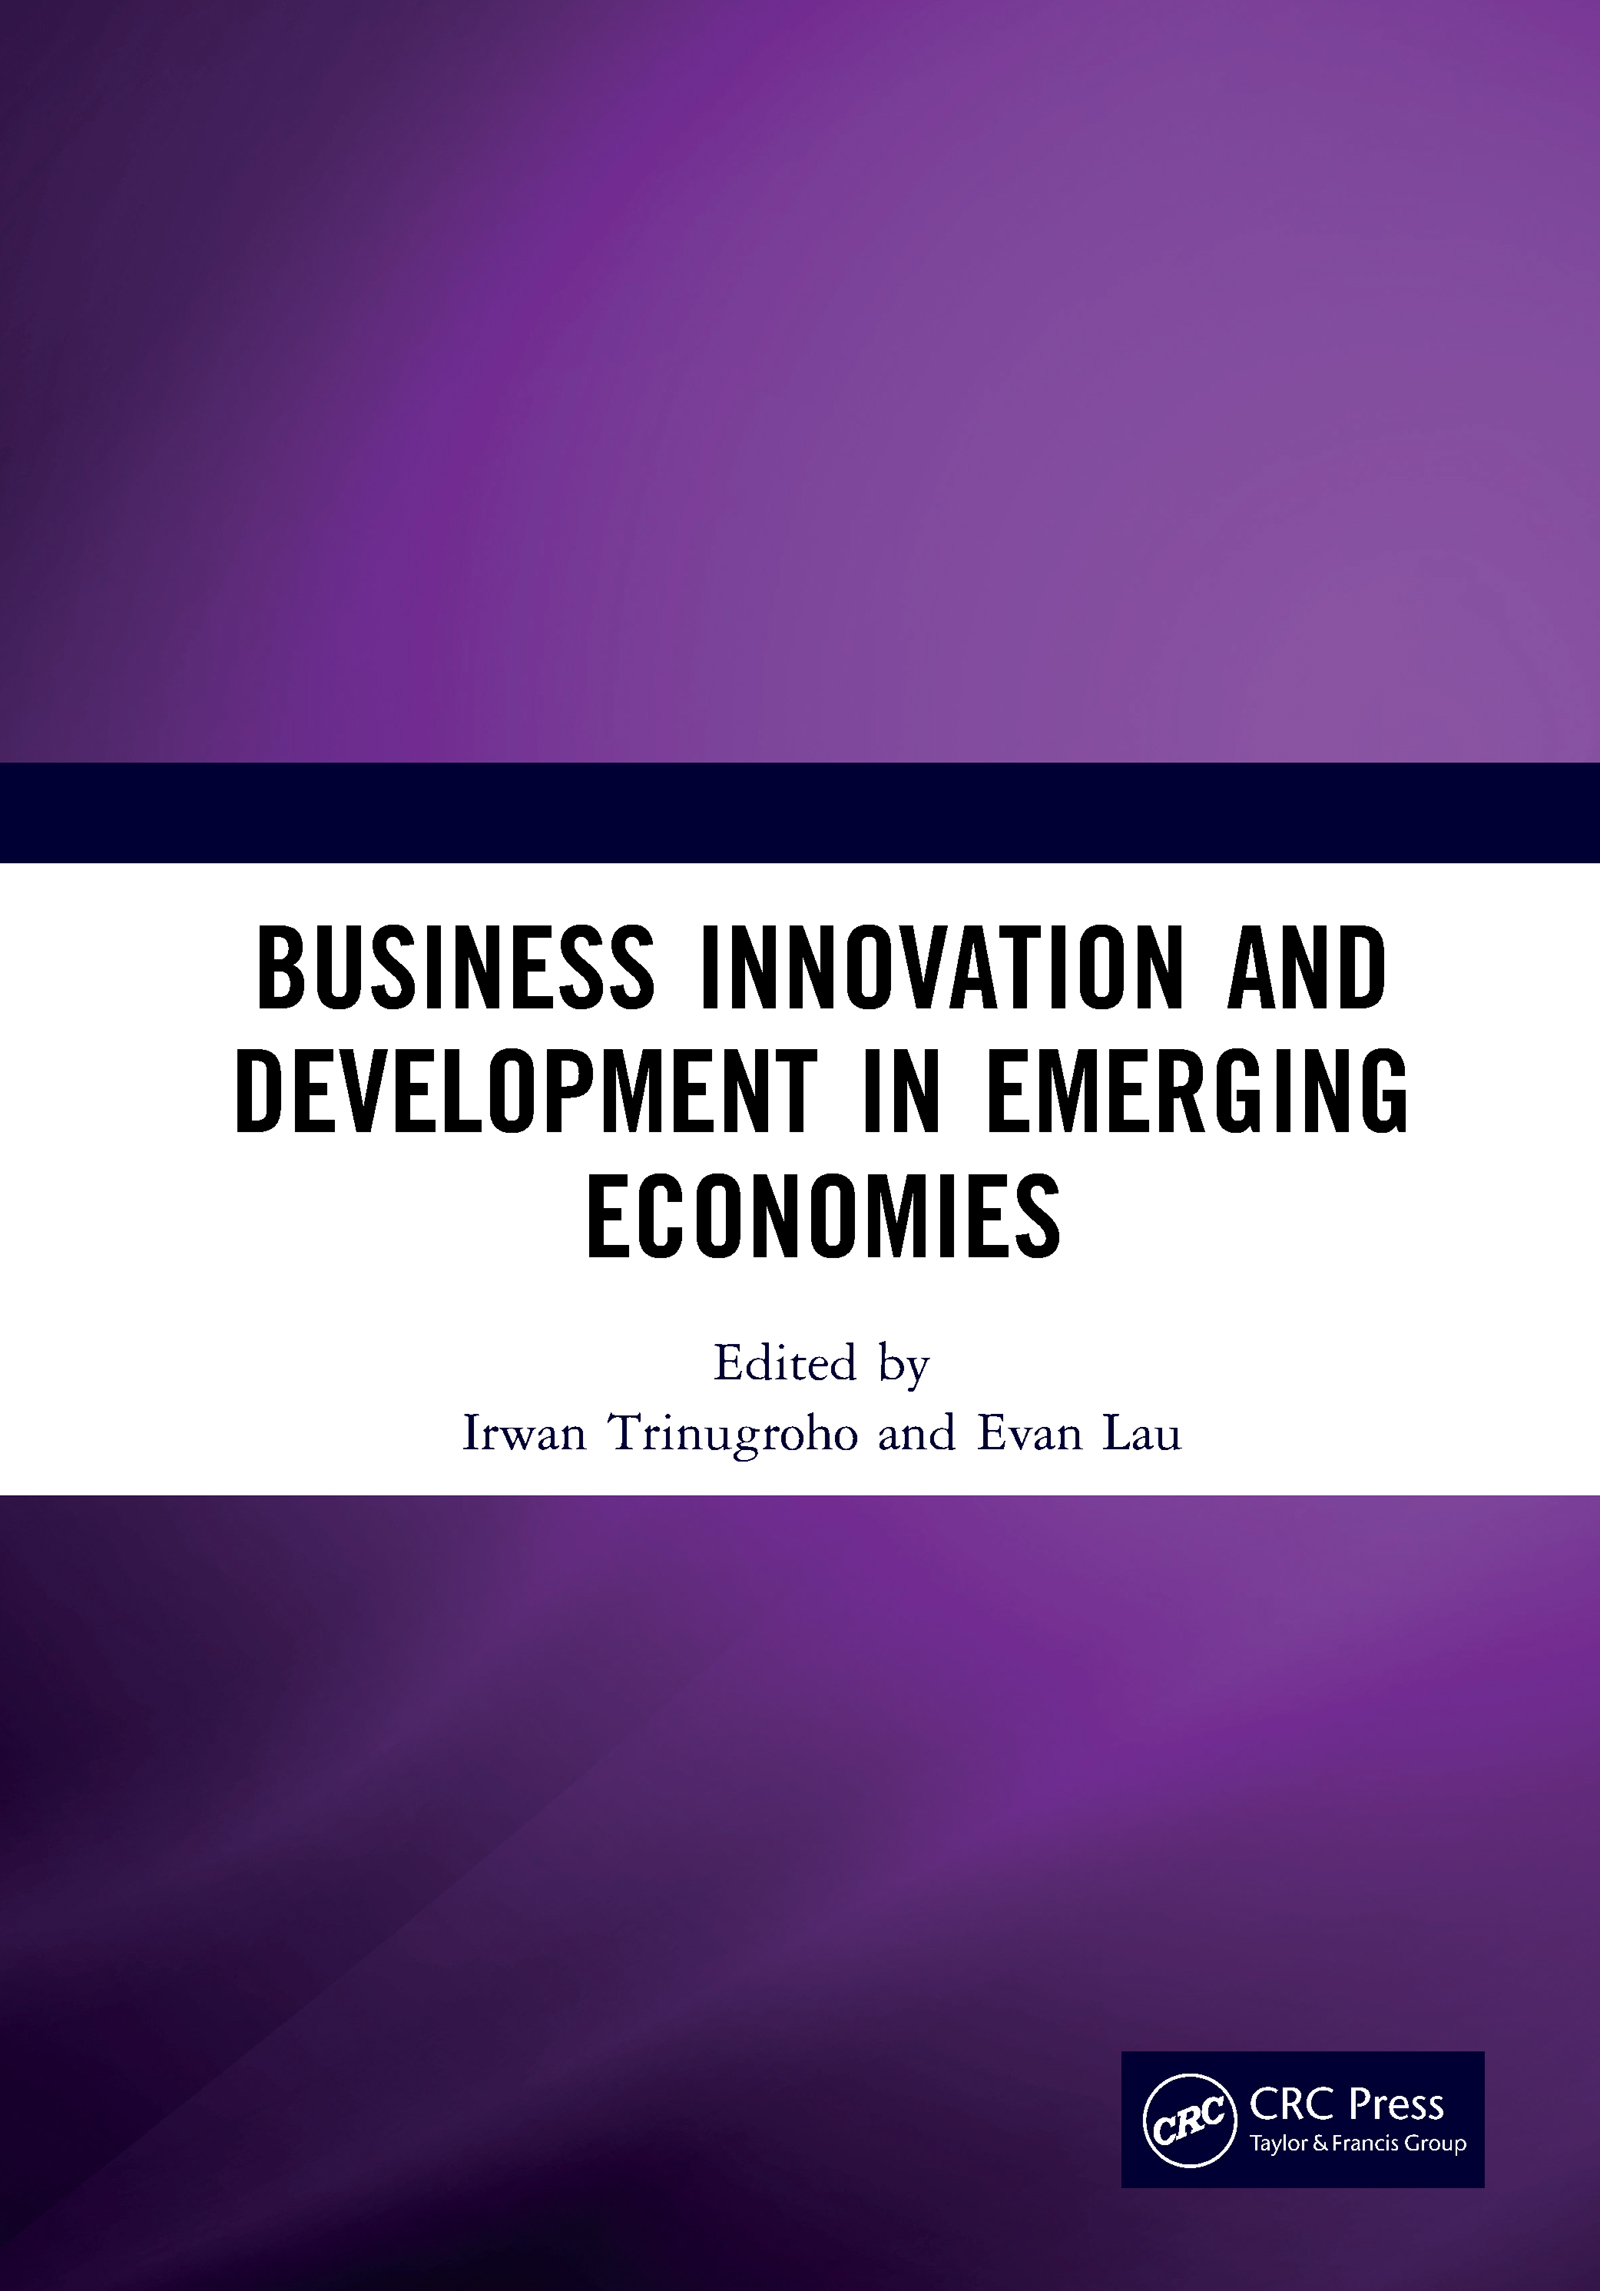 Business Innovation and Development in Emerging Economies